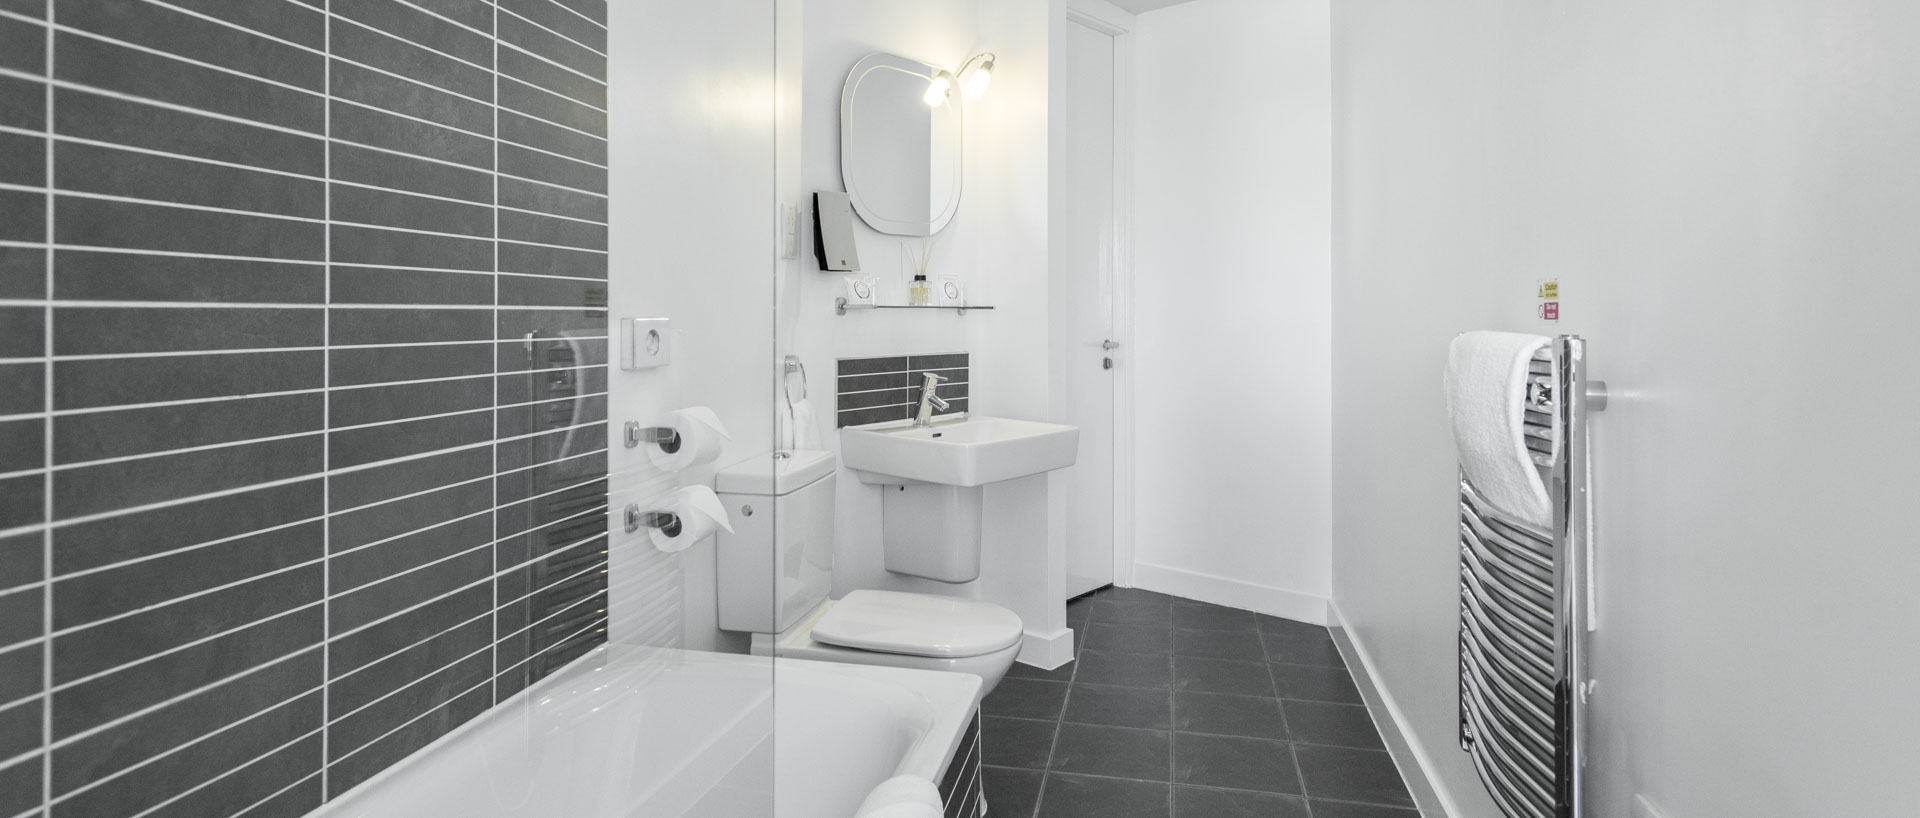 PREMIER SUITES Liverpool one bedroom bathroom